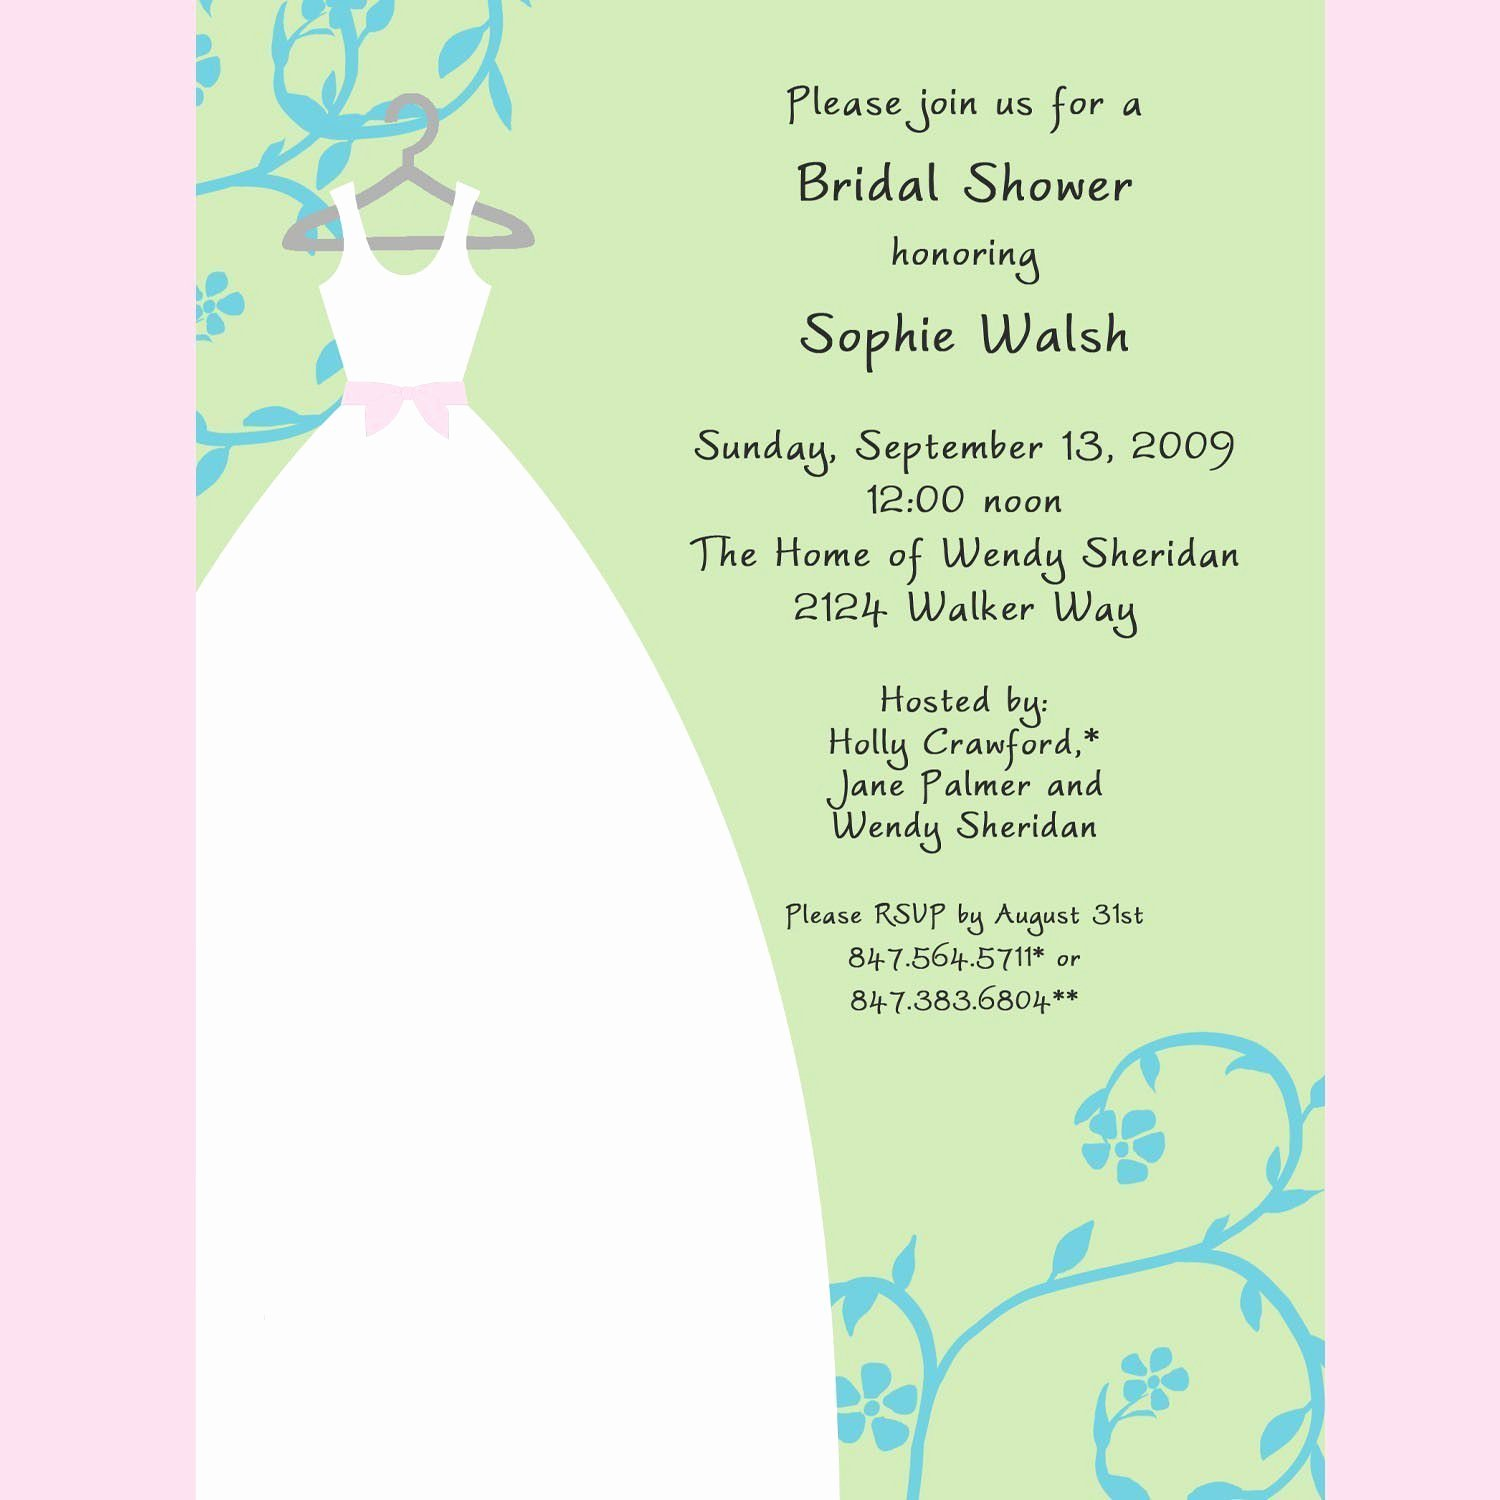 Wedding Shower Invitations Template Beautiful Bridal Shower Invitations Samples Bridal Shower